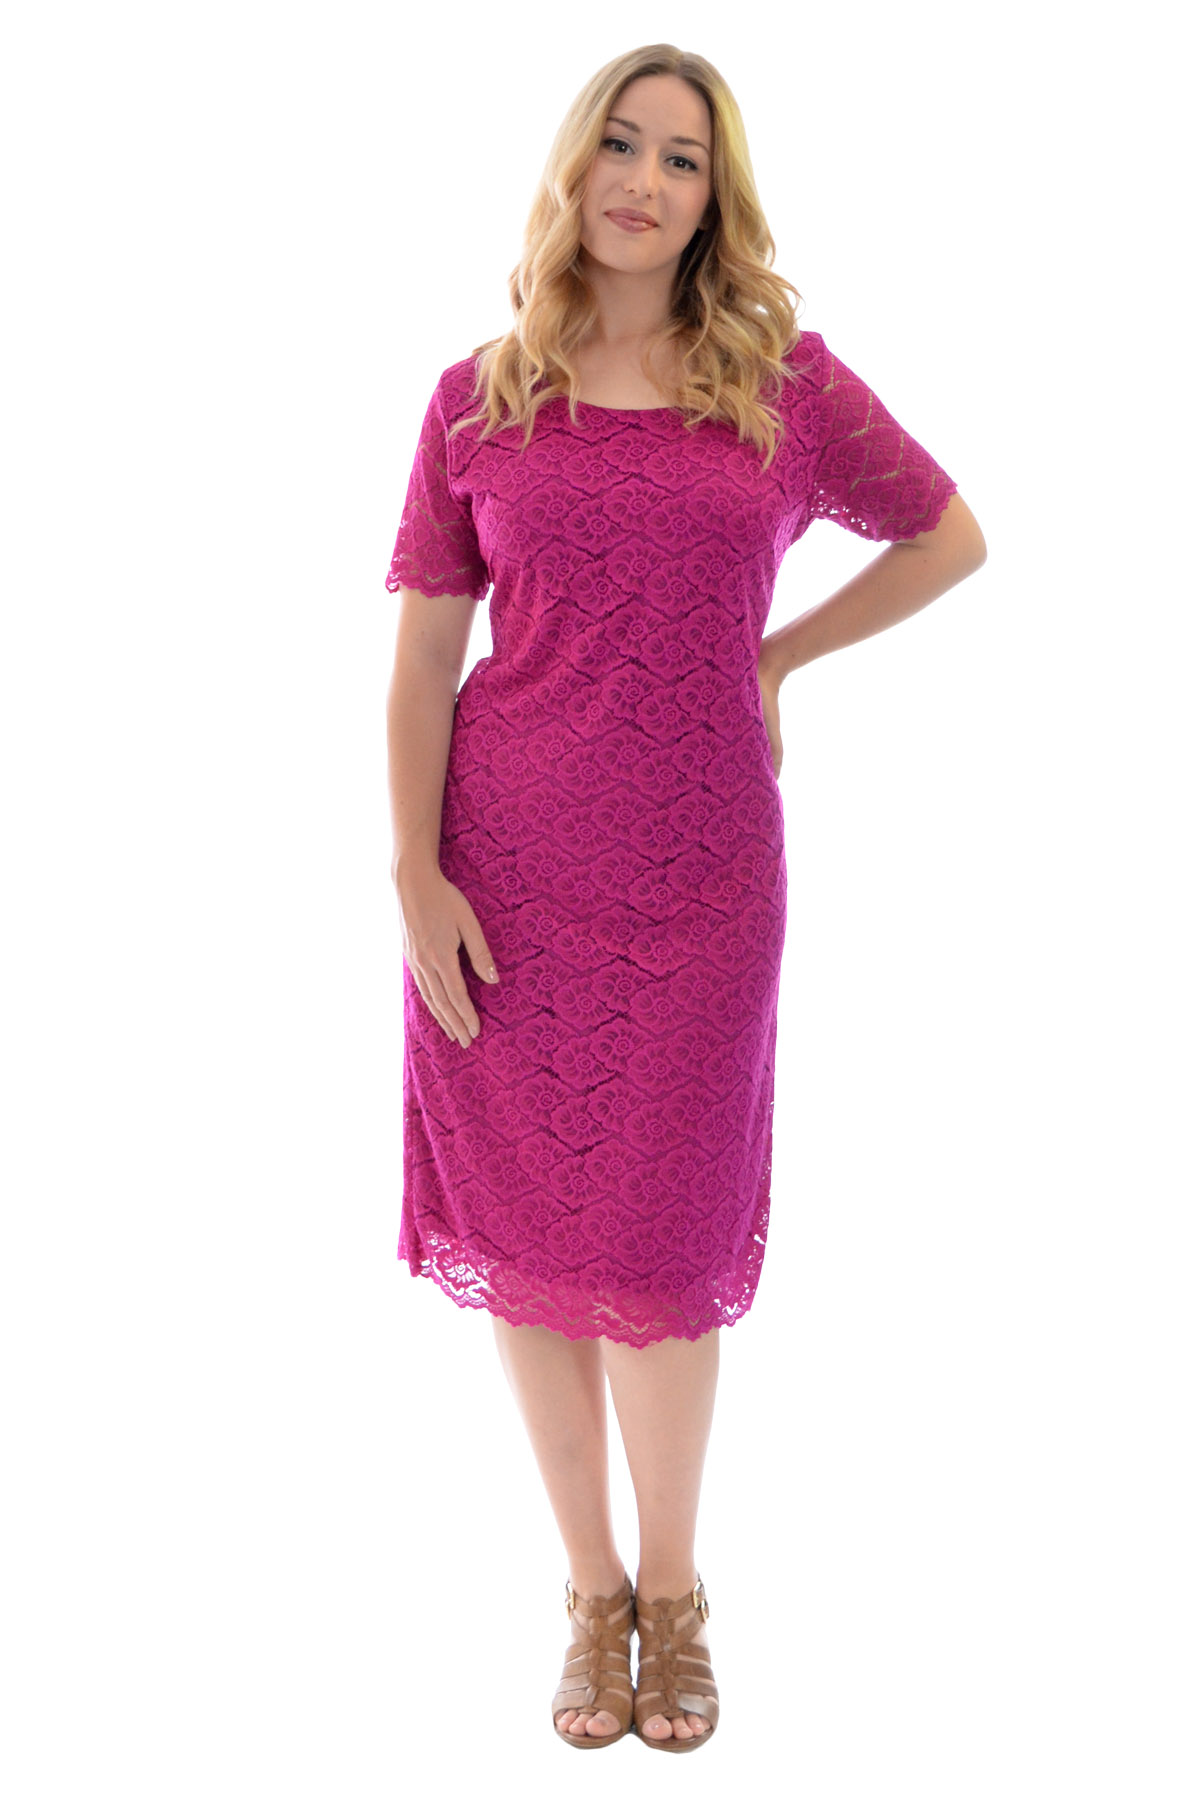 Free next day delivery on eligible orders for Amazon prime members | Buy women's tunic dresses on gehedoruqigimate.ml